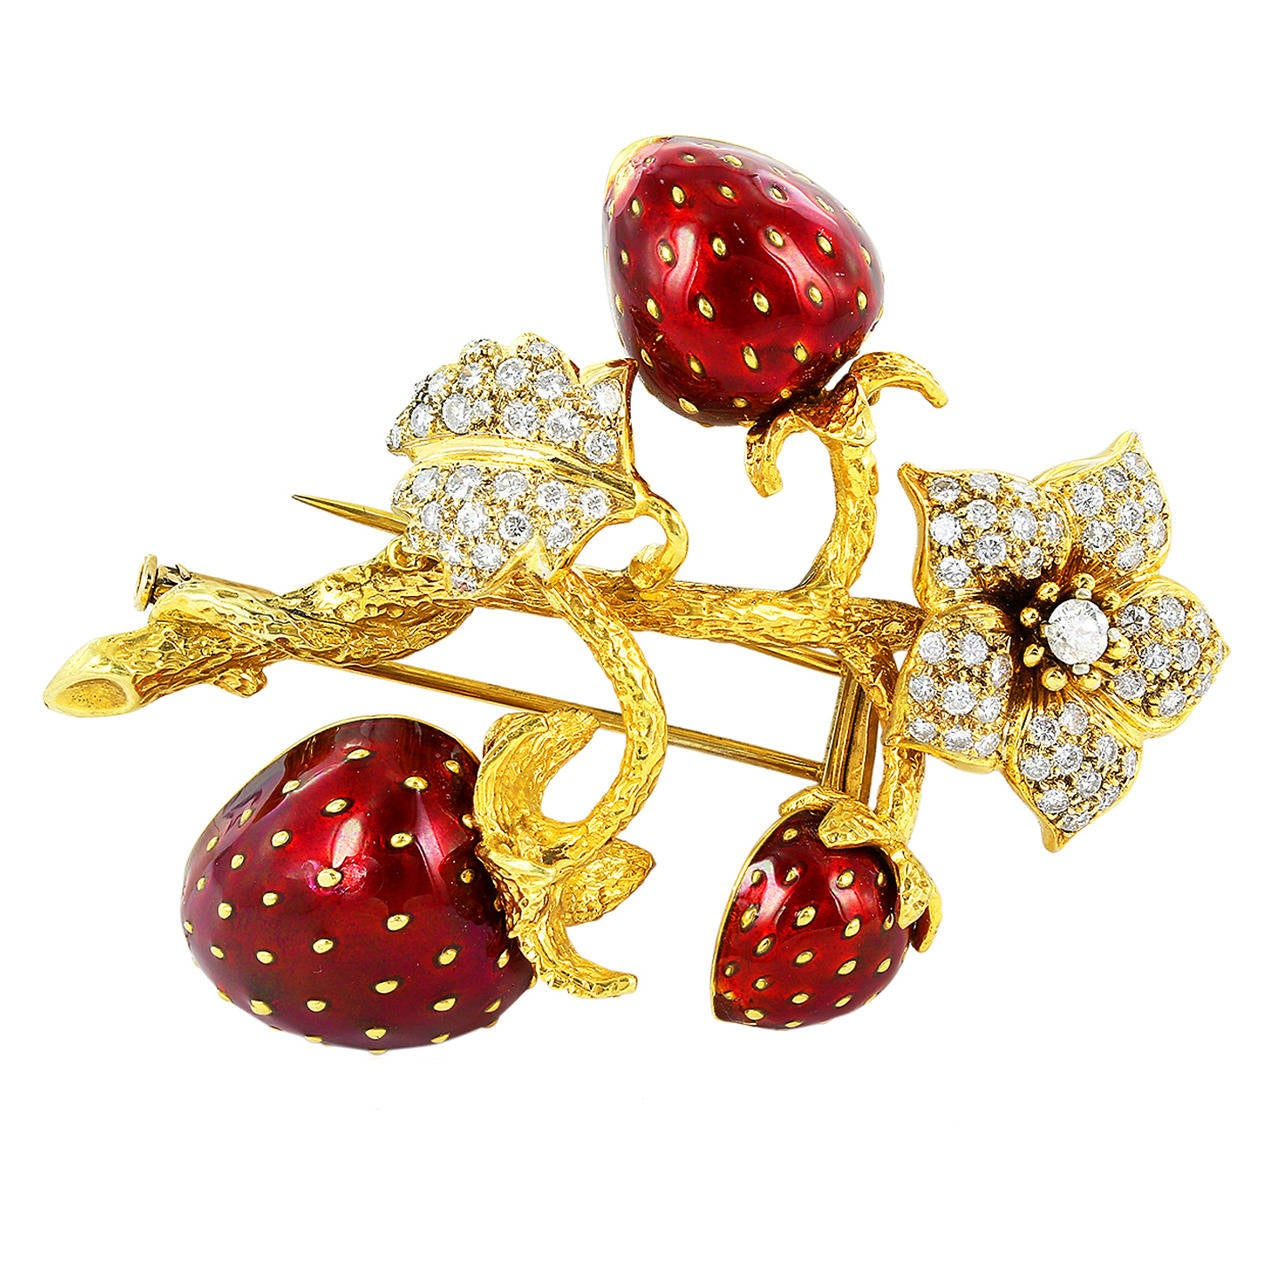 Enamel Diamond Gold Strawberry Brooch